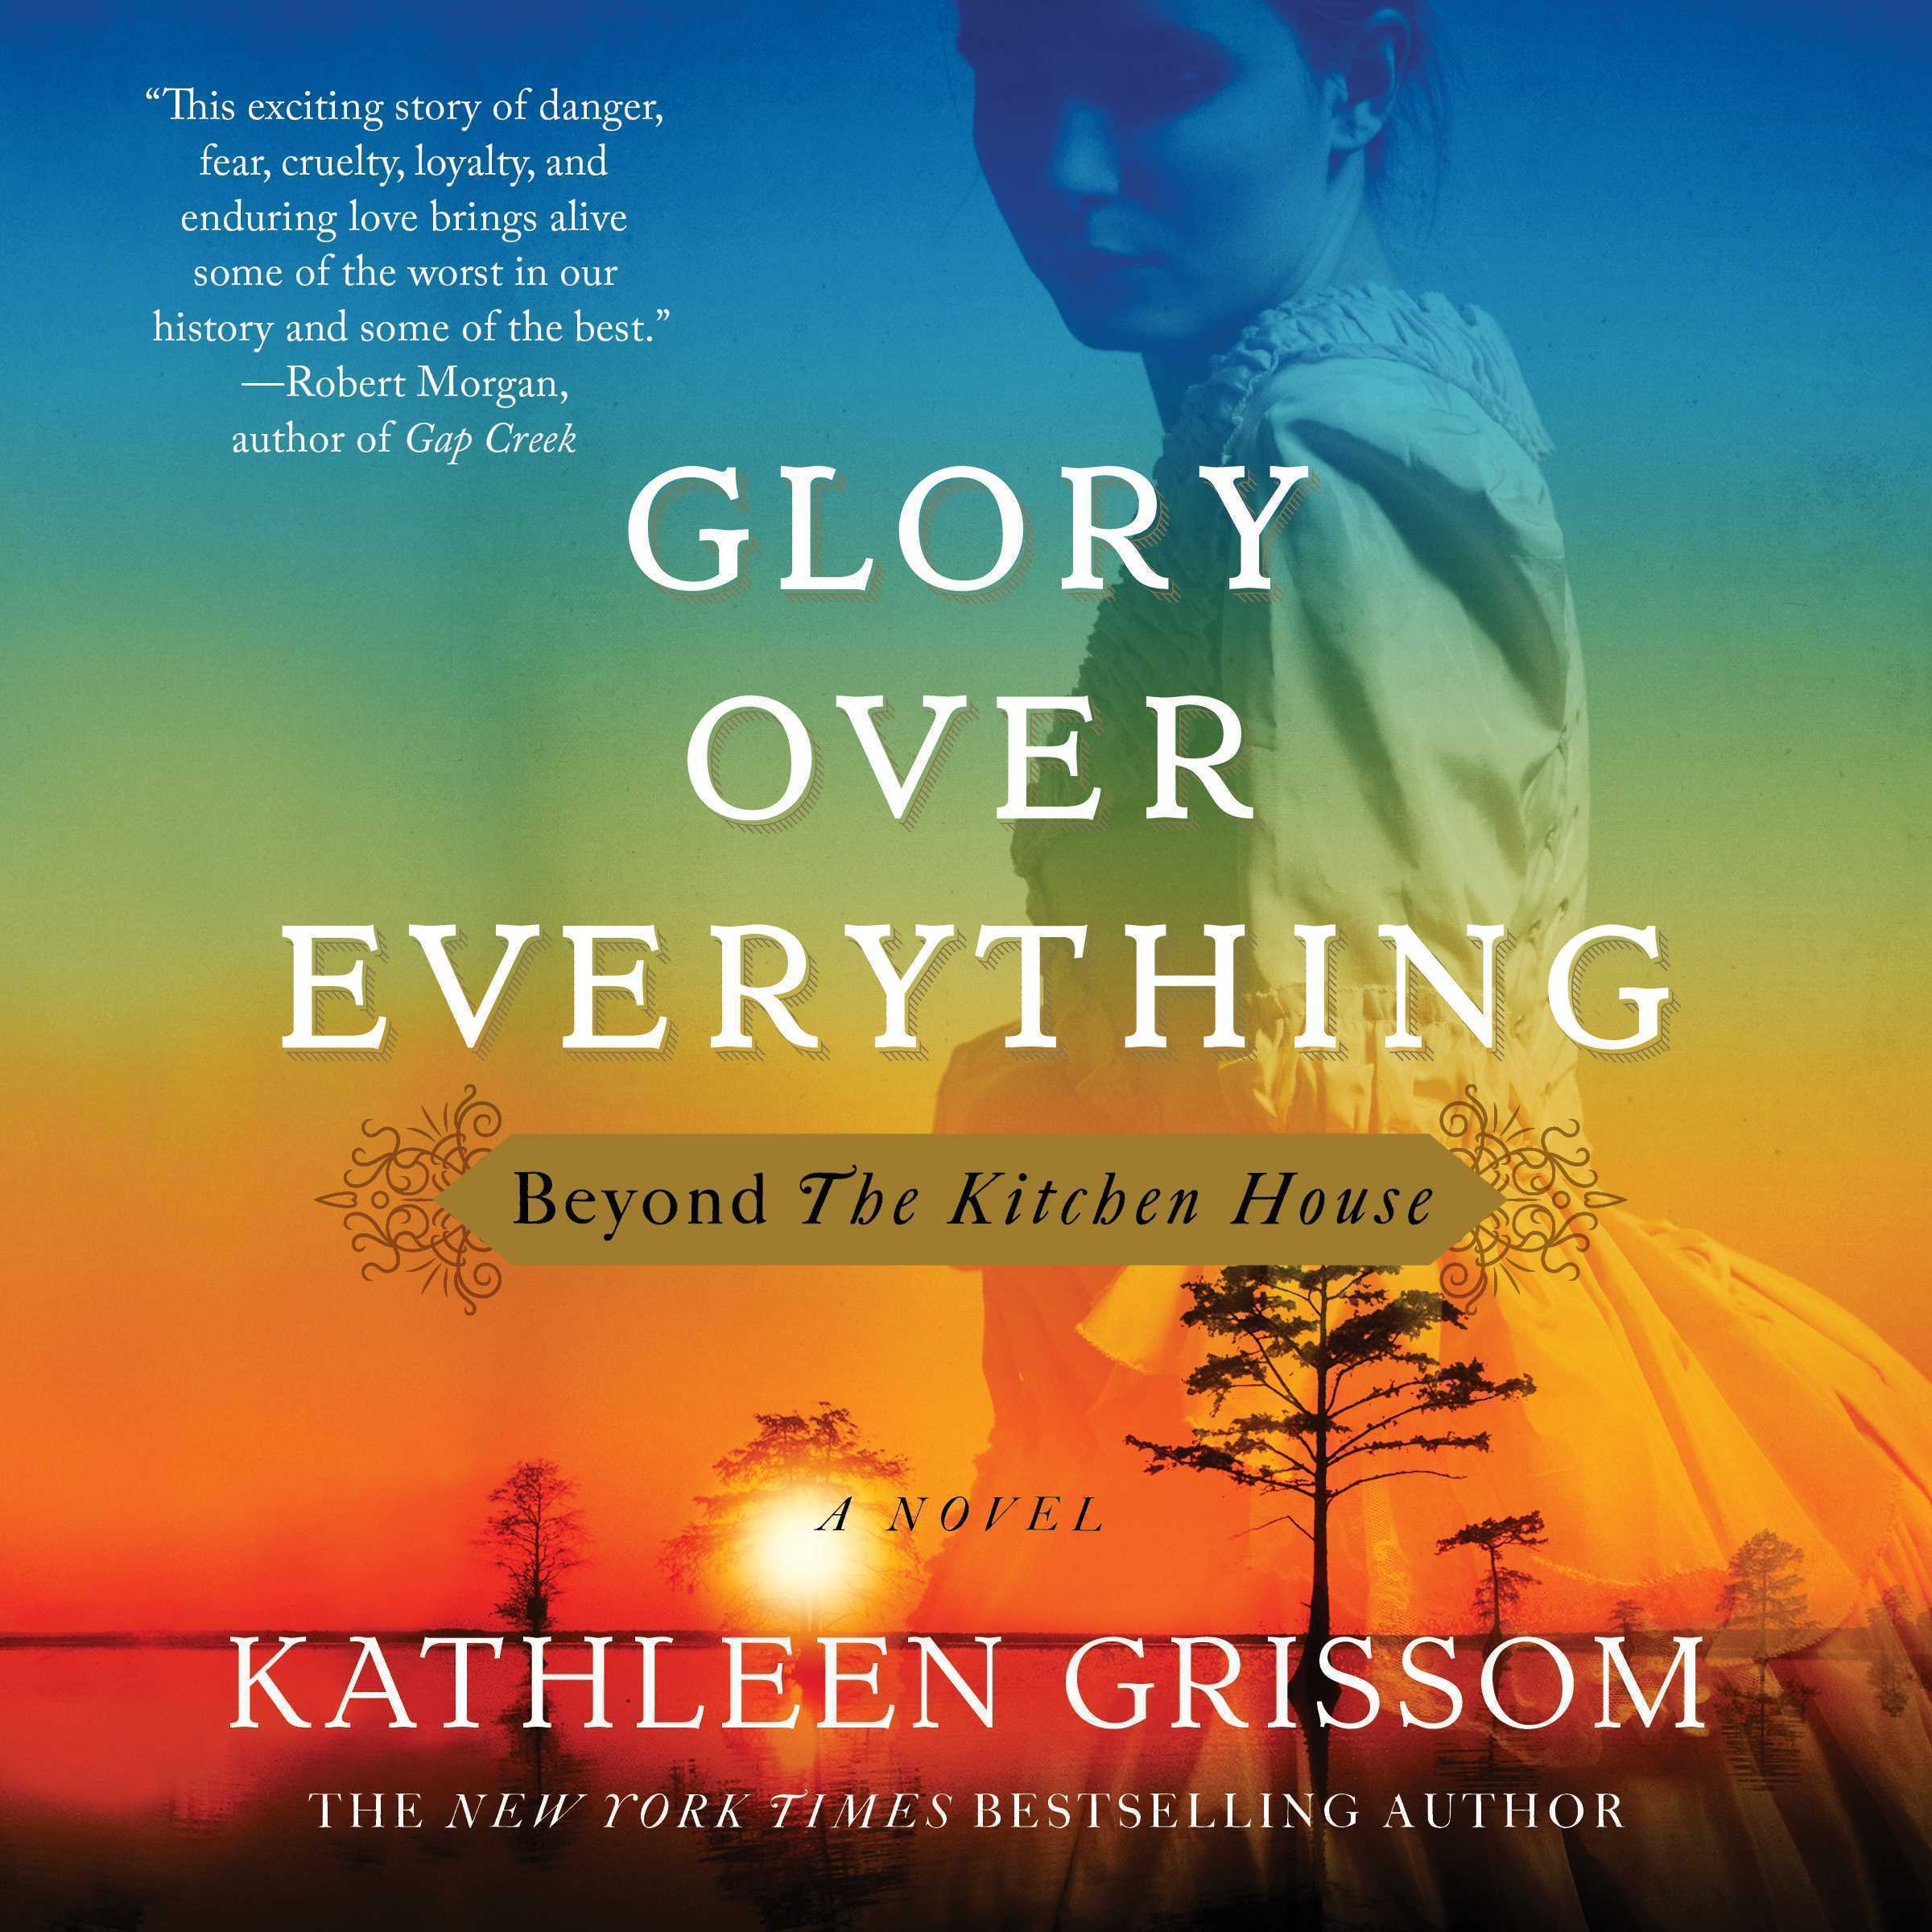 Printable Glory over Everything: Beyond The Kitchen House Audiobook Cover Art